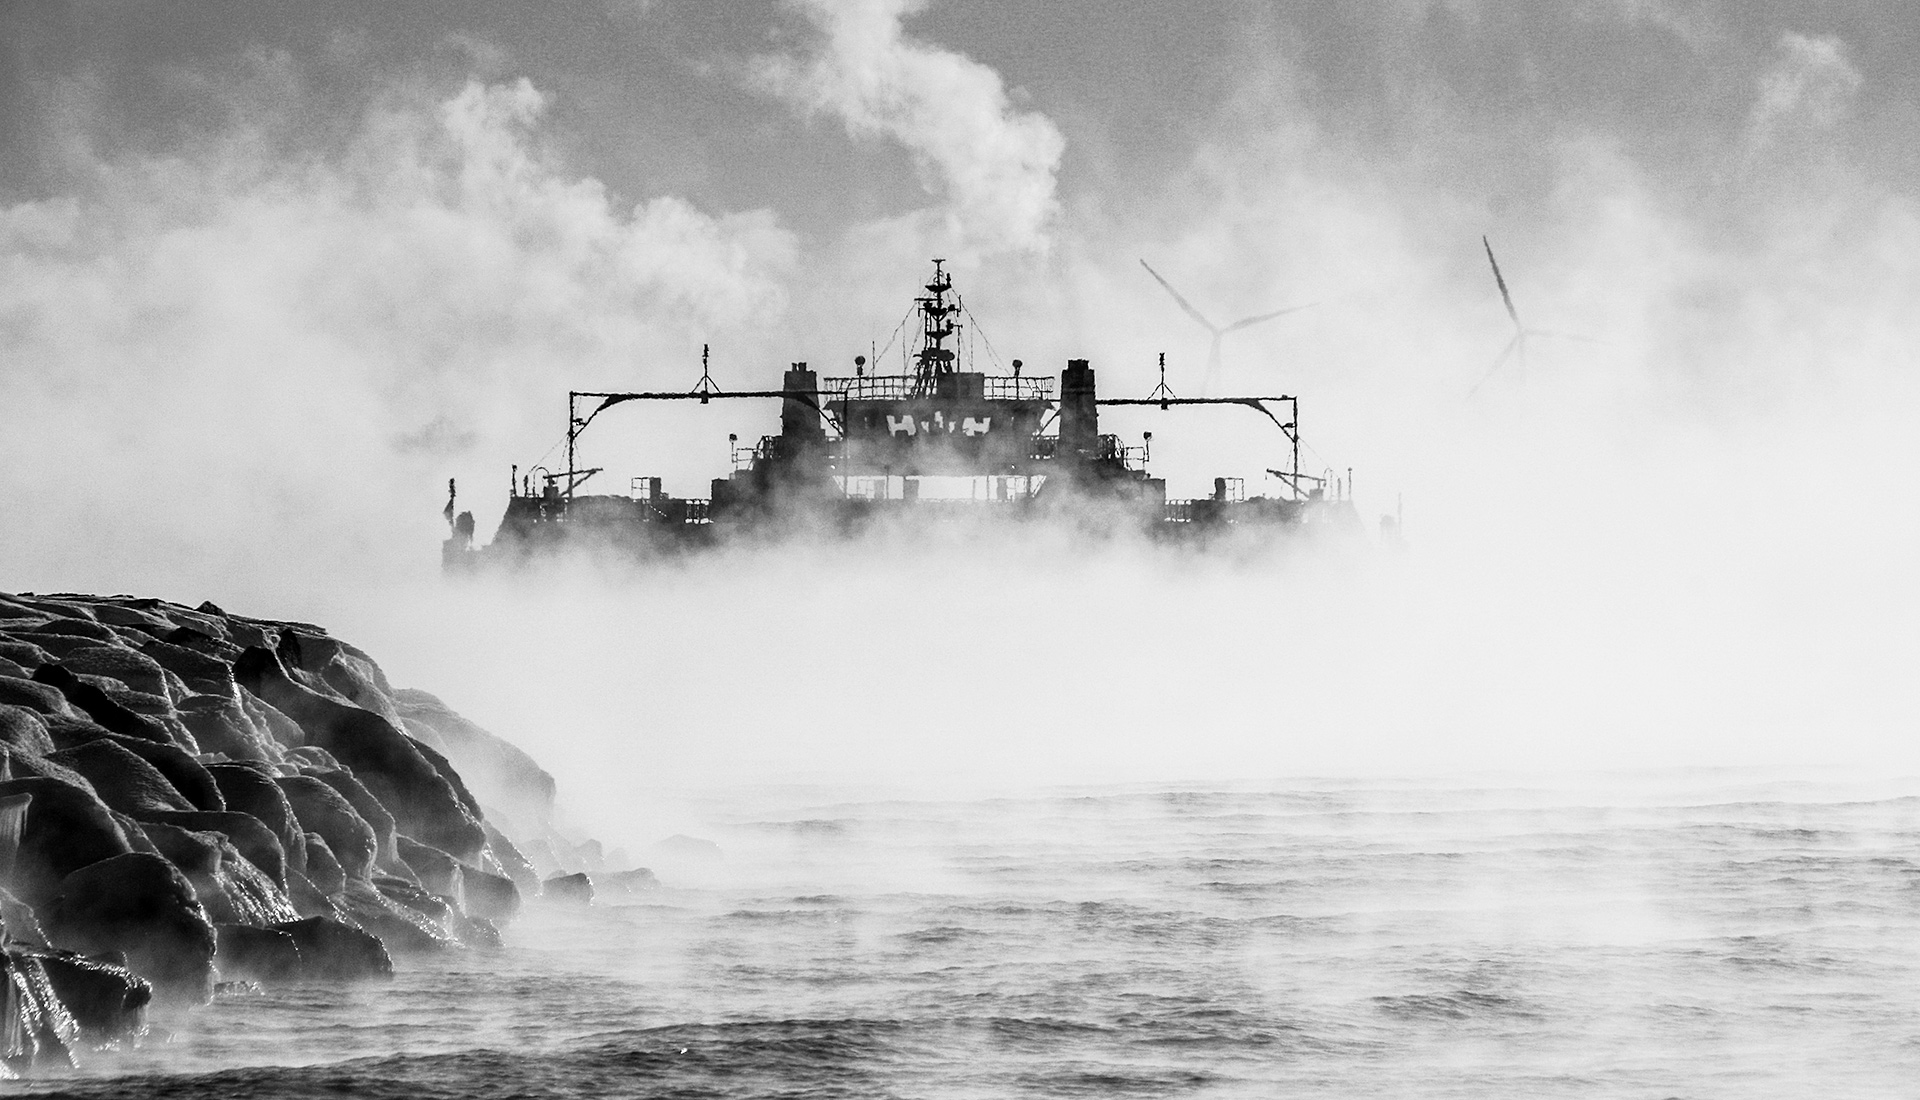 an image of the wolfe island ferry surrounded by fog